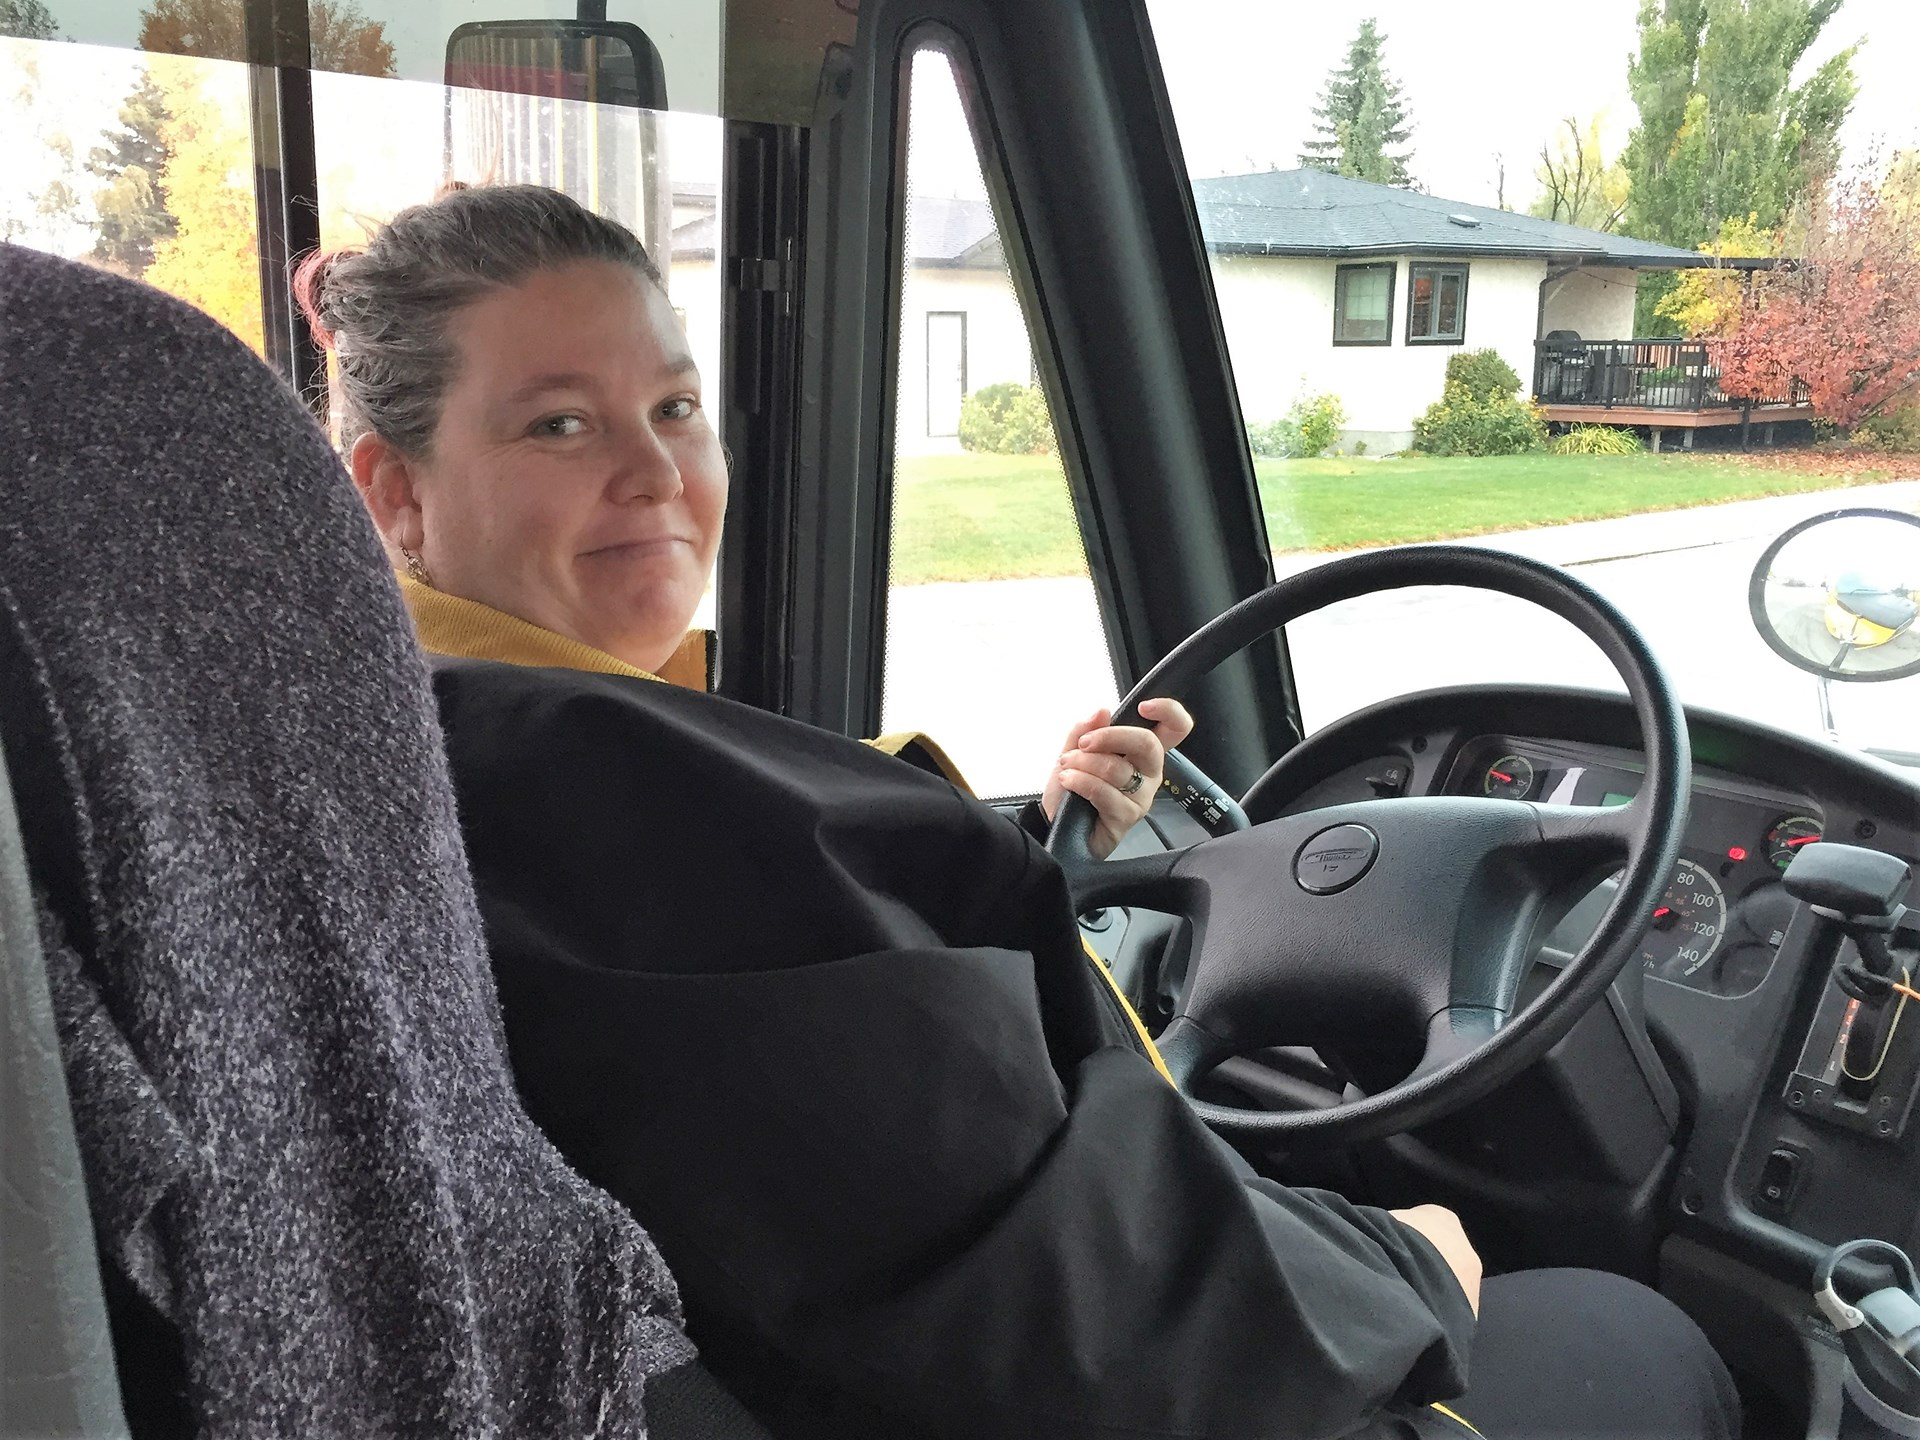 Humboldt In-City Bus Driver.JPG